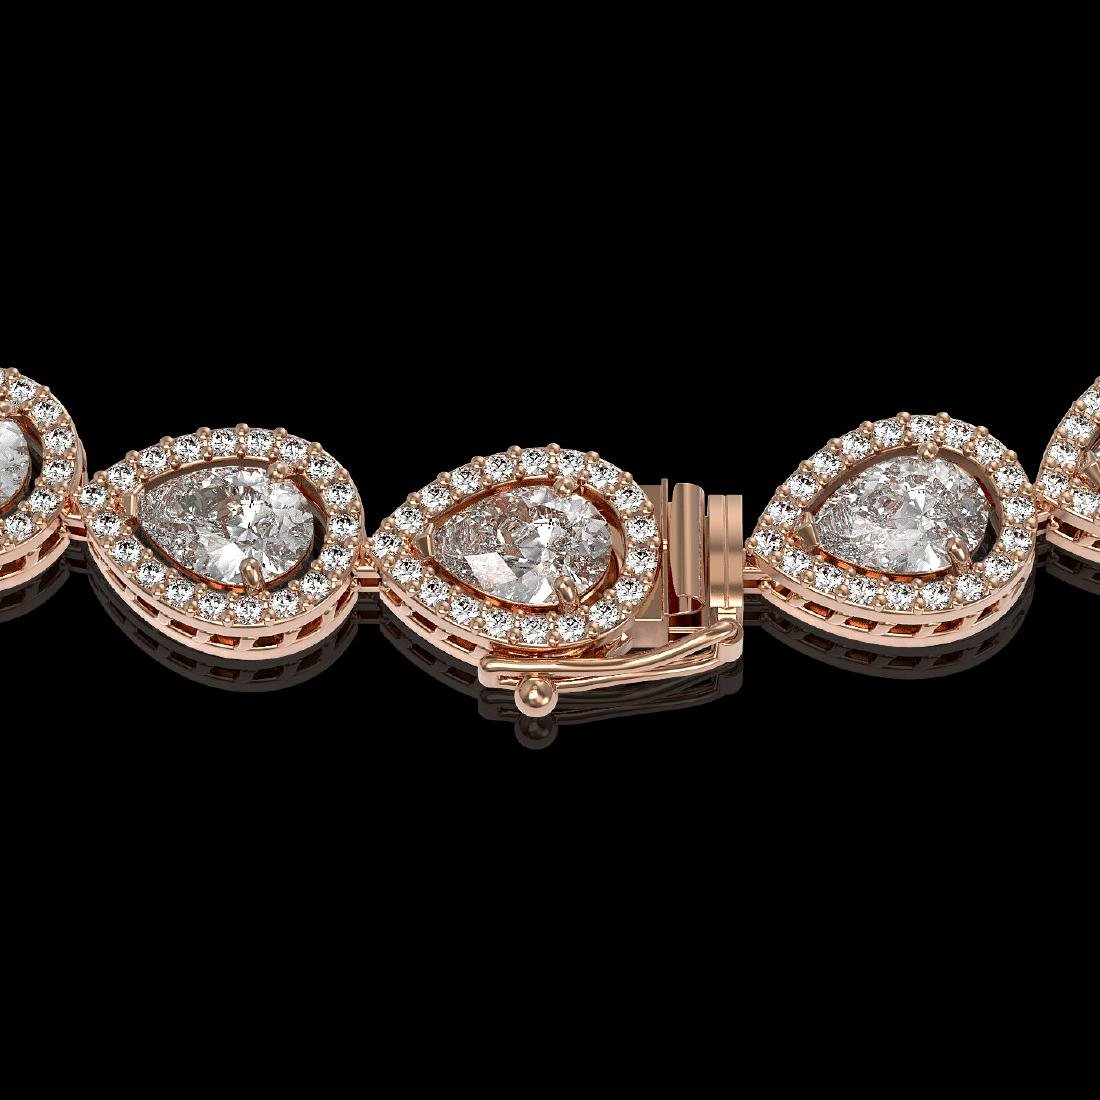 28.74 CTW Pear Diamond Designer Necklace 18K Rose Gold - 3